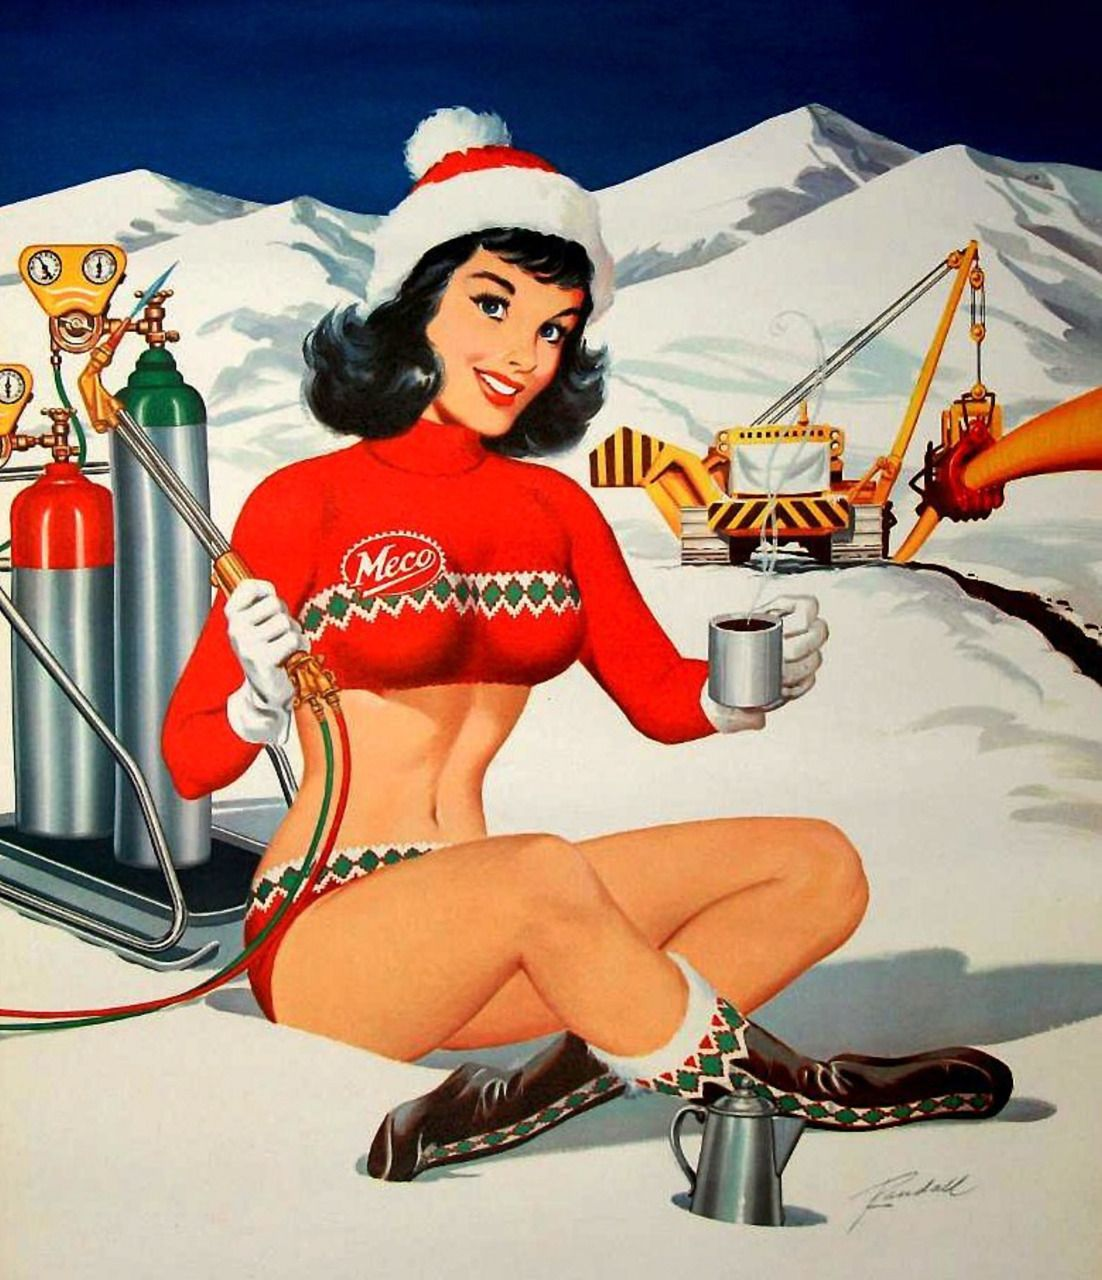 Hitting the slopes! ::Vintage Christmas Pinup Girl:: Retro ...